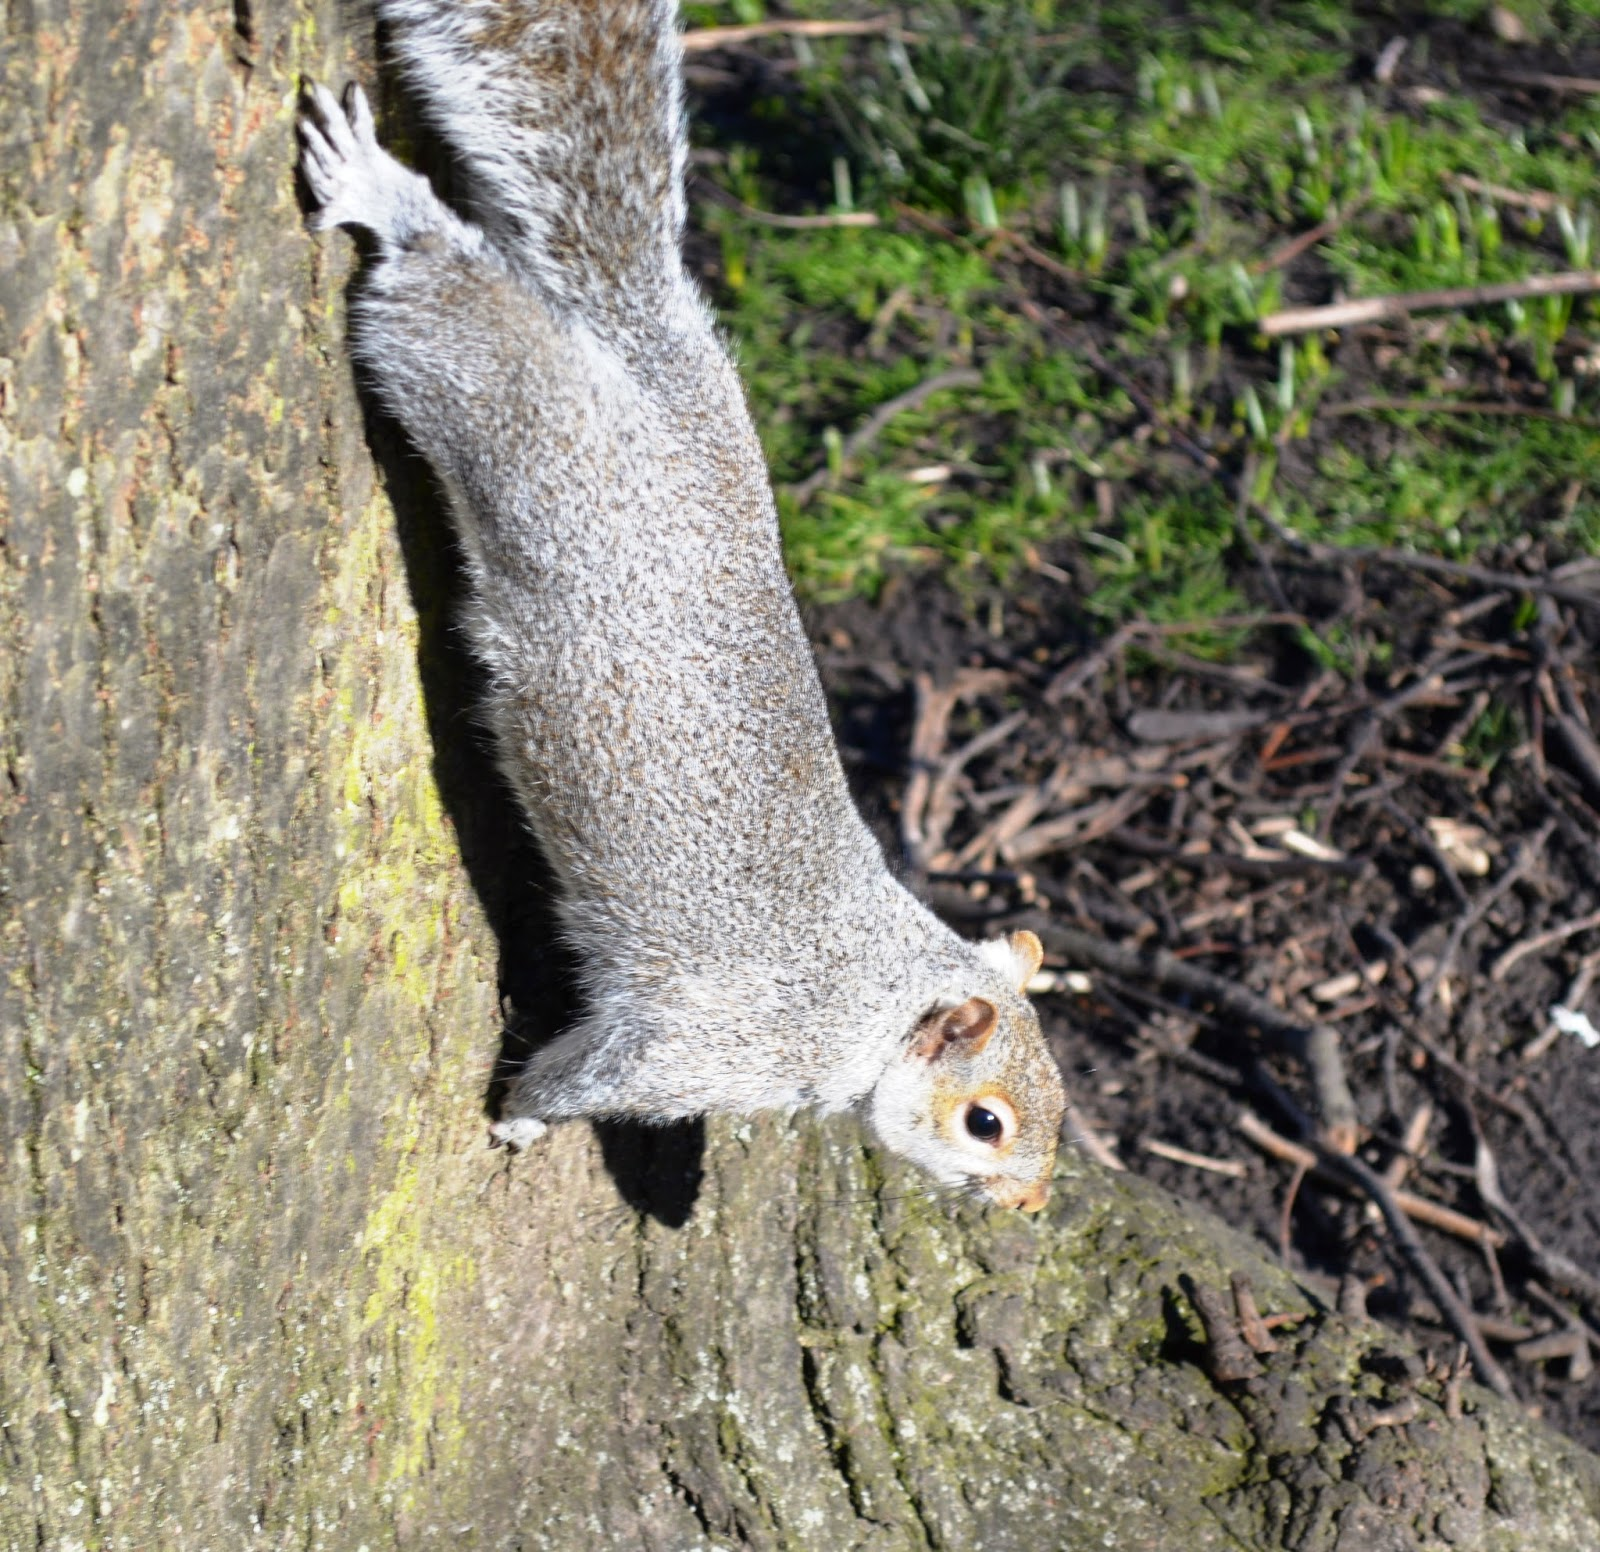 grey squirrel on tree, close up, woods, photograph